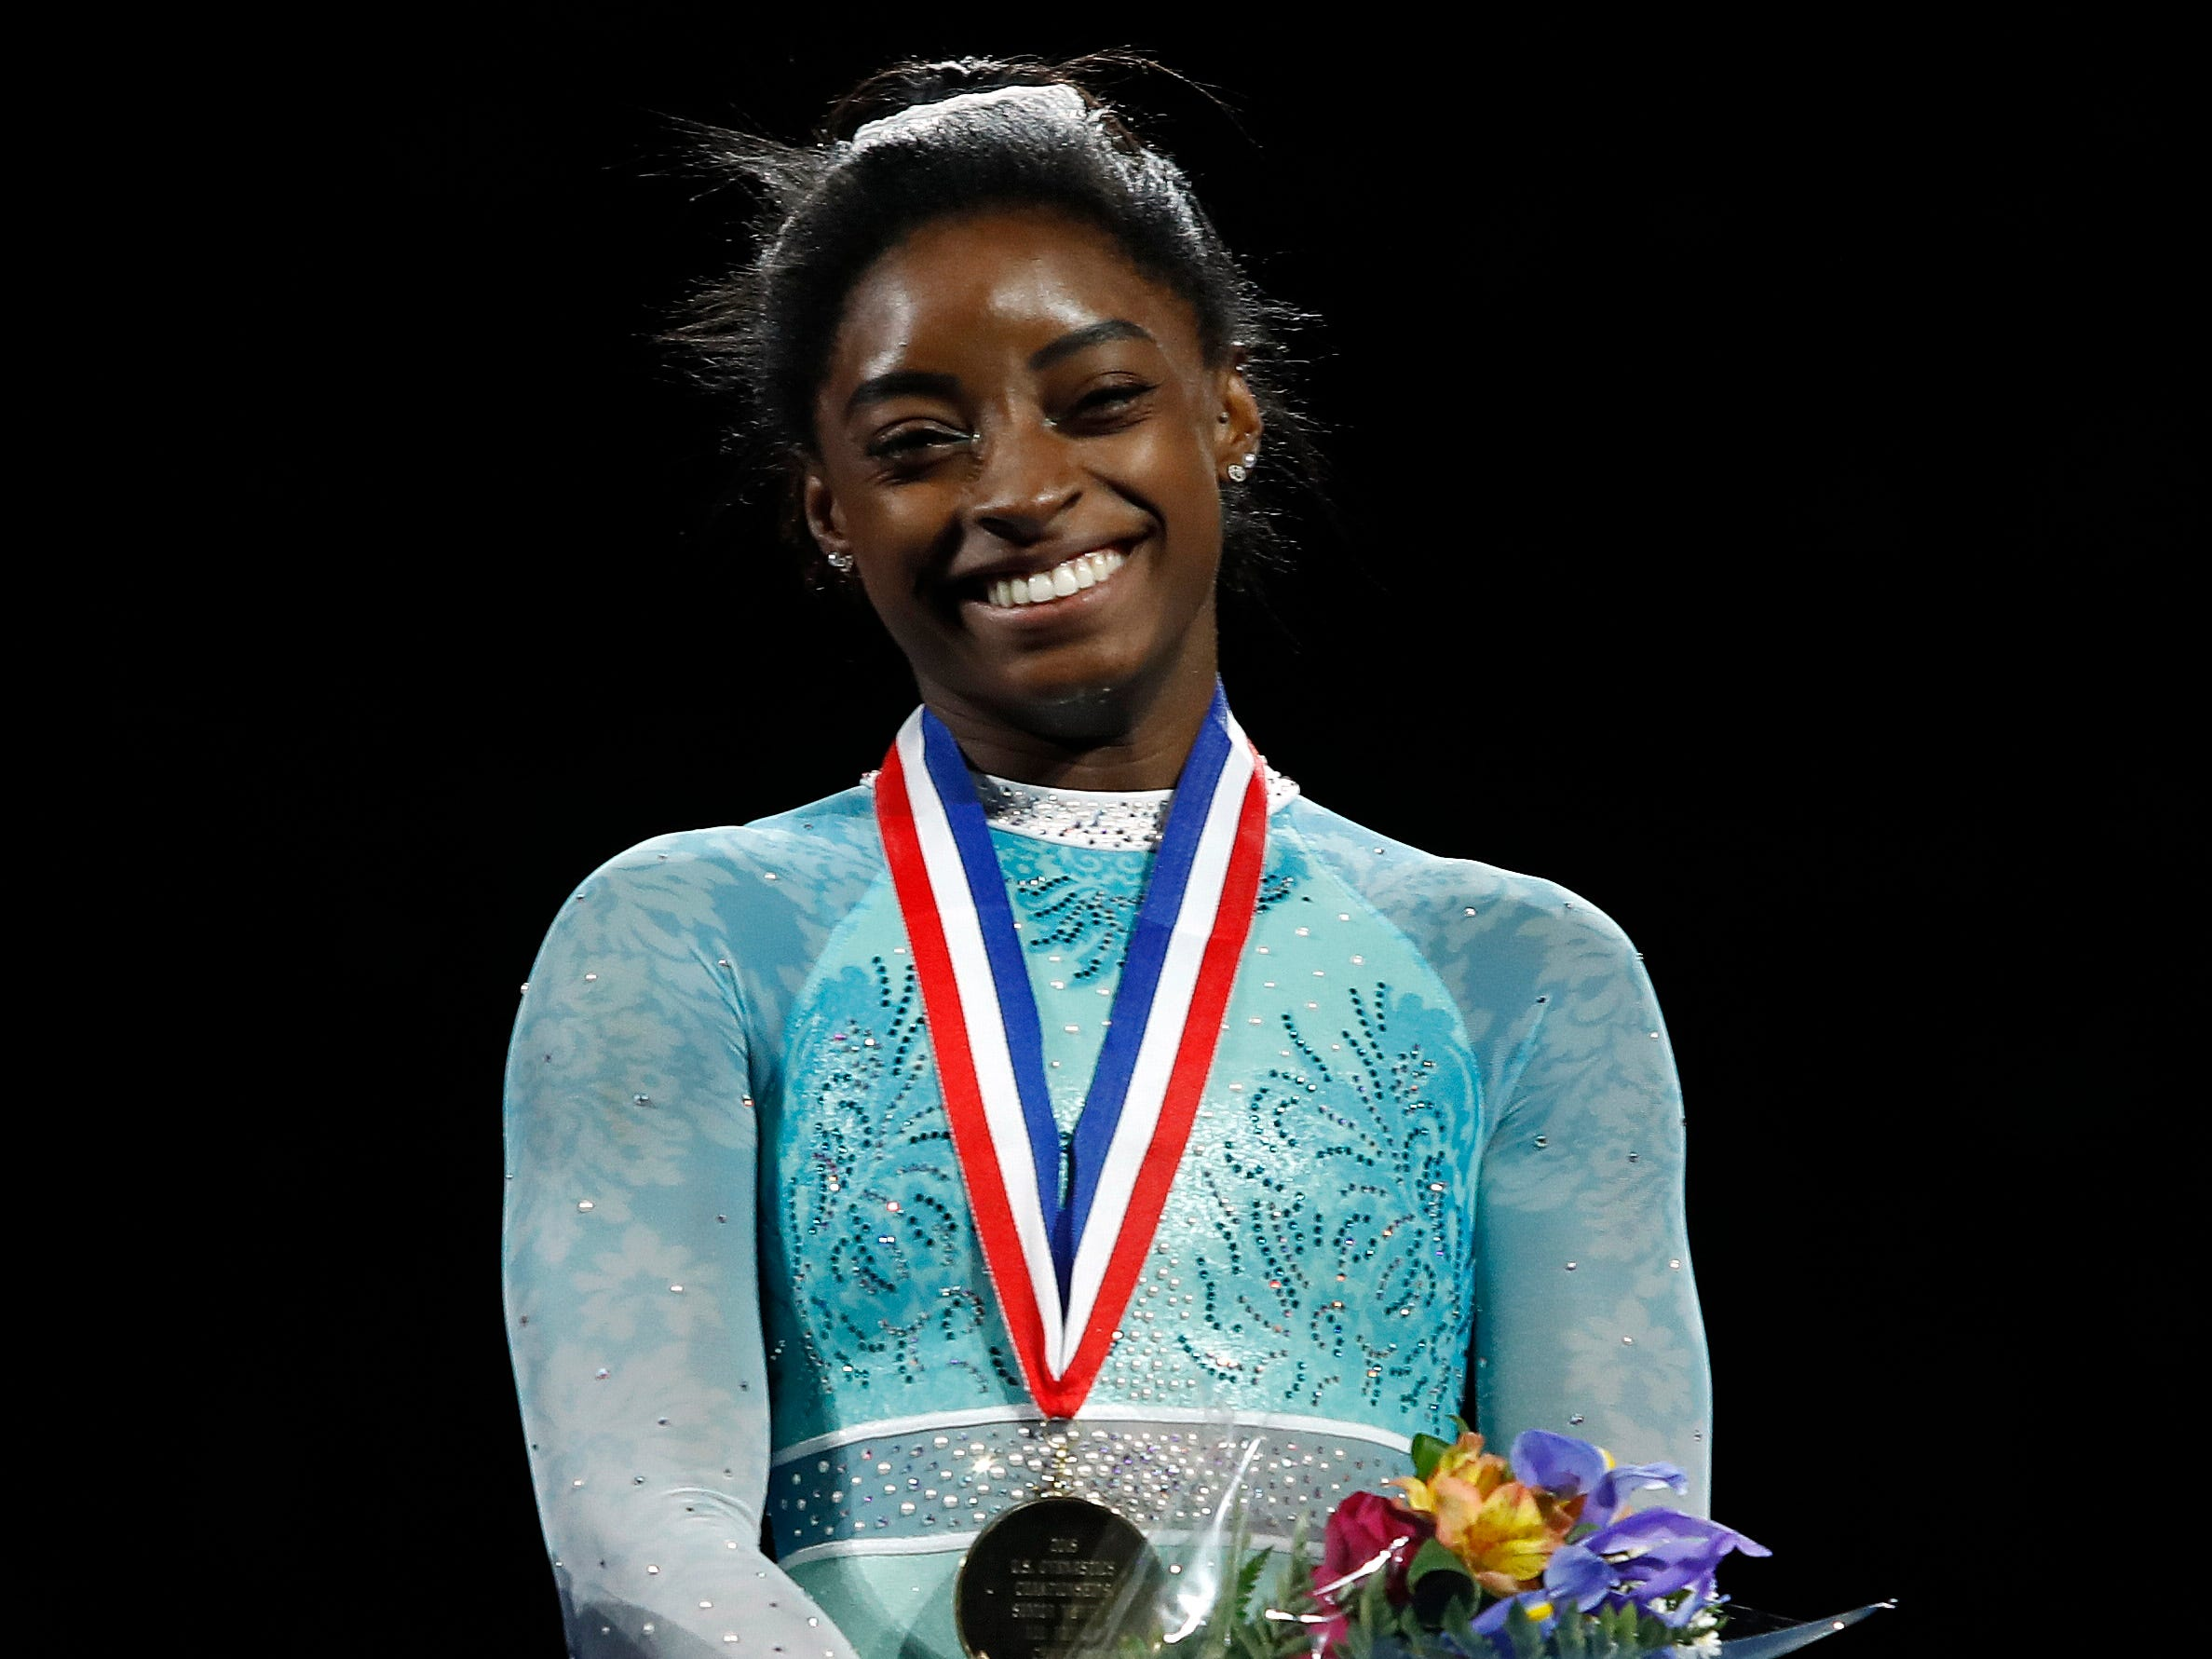 Simone Biles smiles after winning the women's all-around during the U.S. Gymnastics Championships.